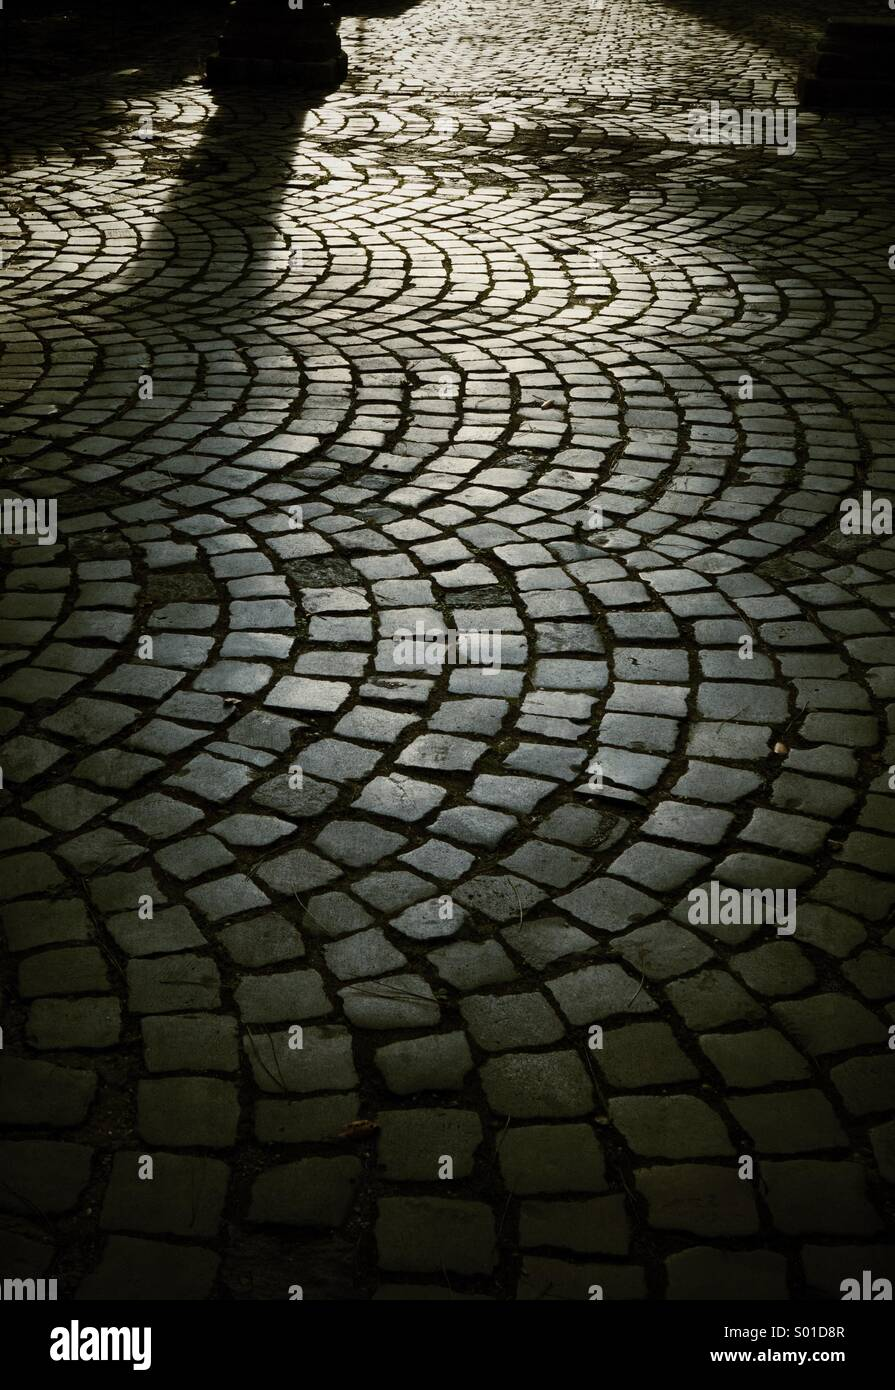 Sunlight on cobbles in Rome, Italy - Stock Image